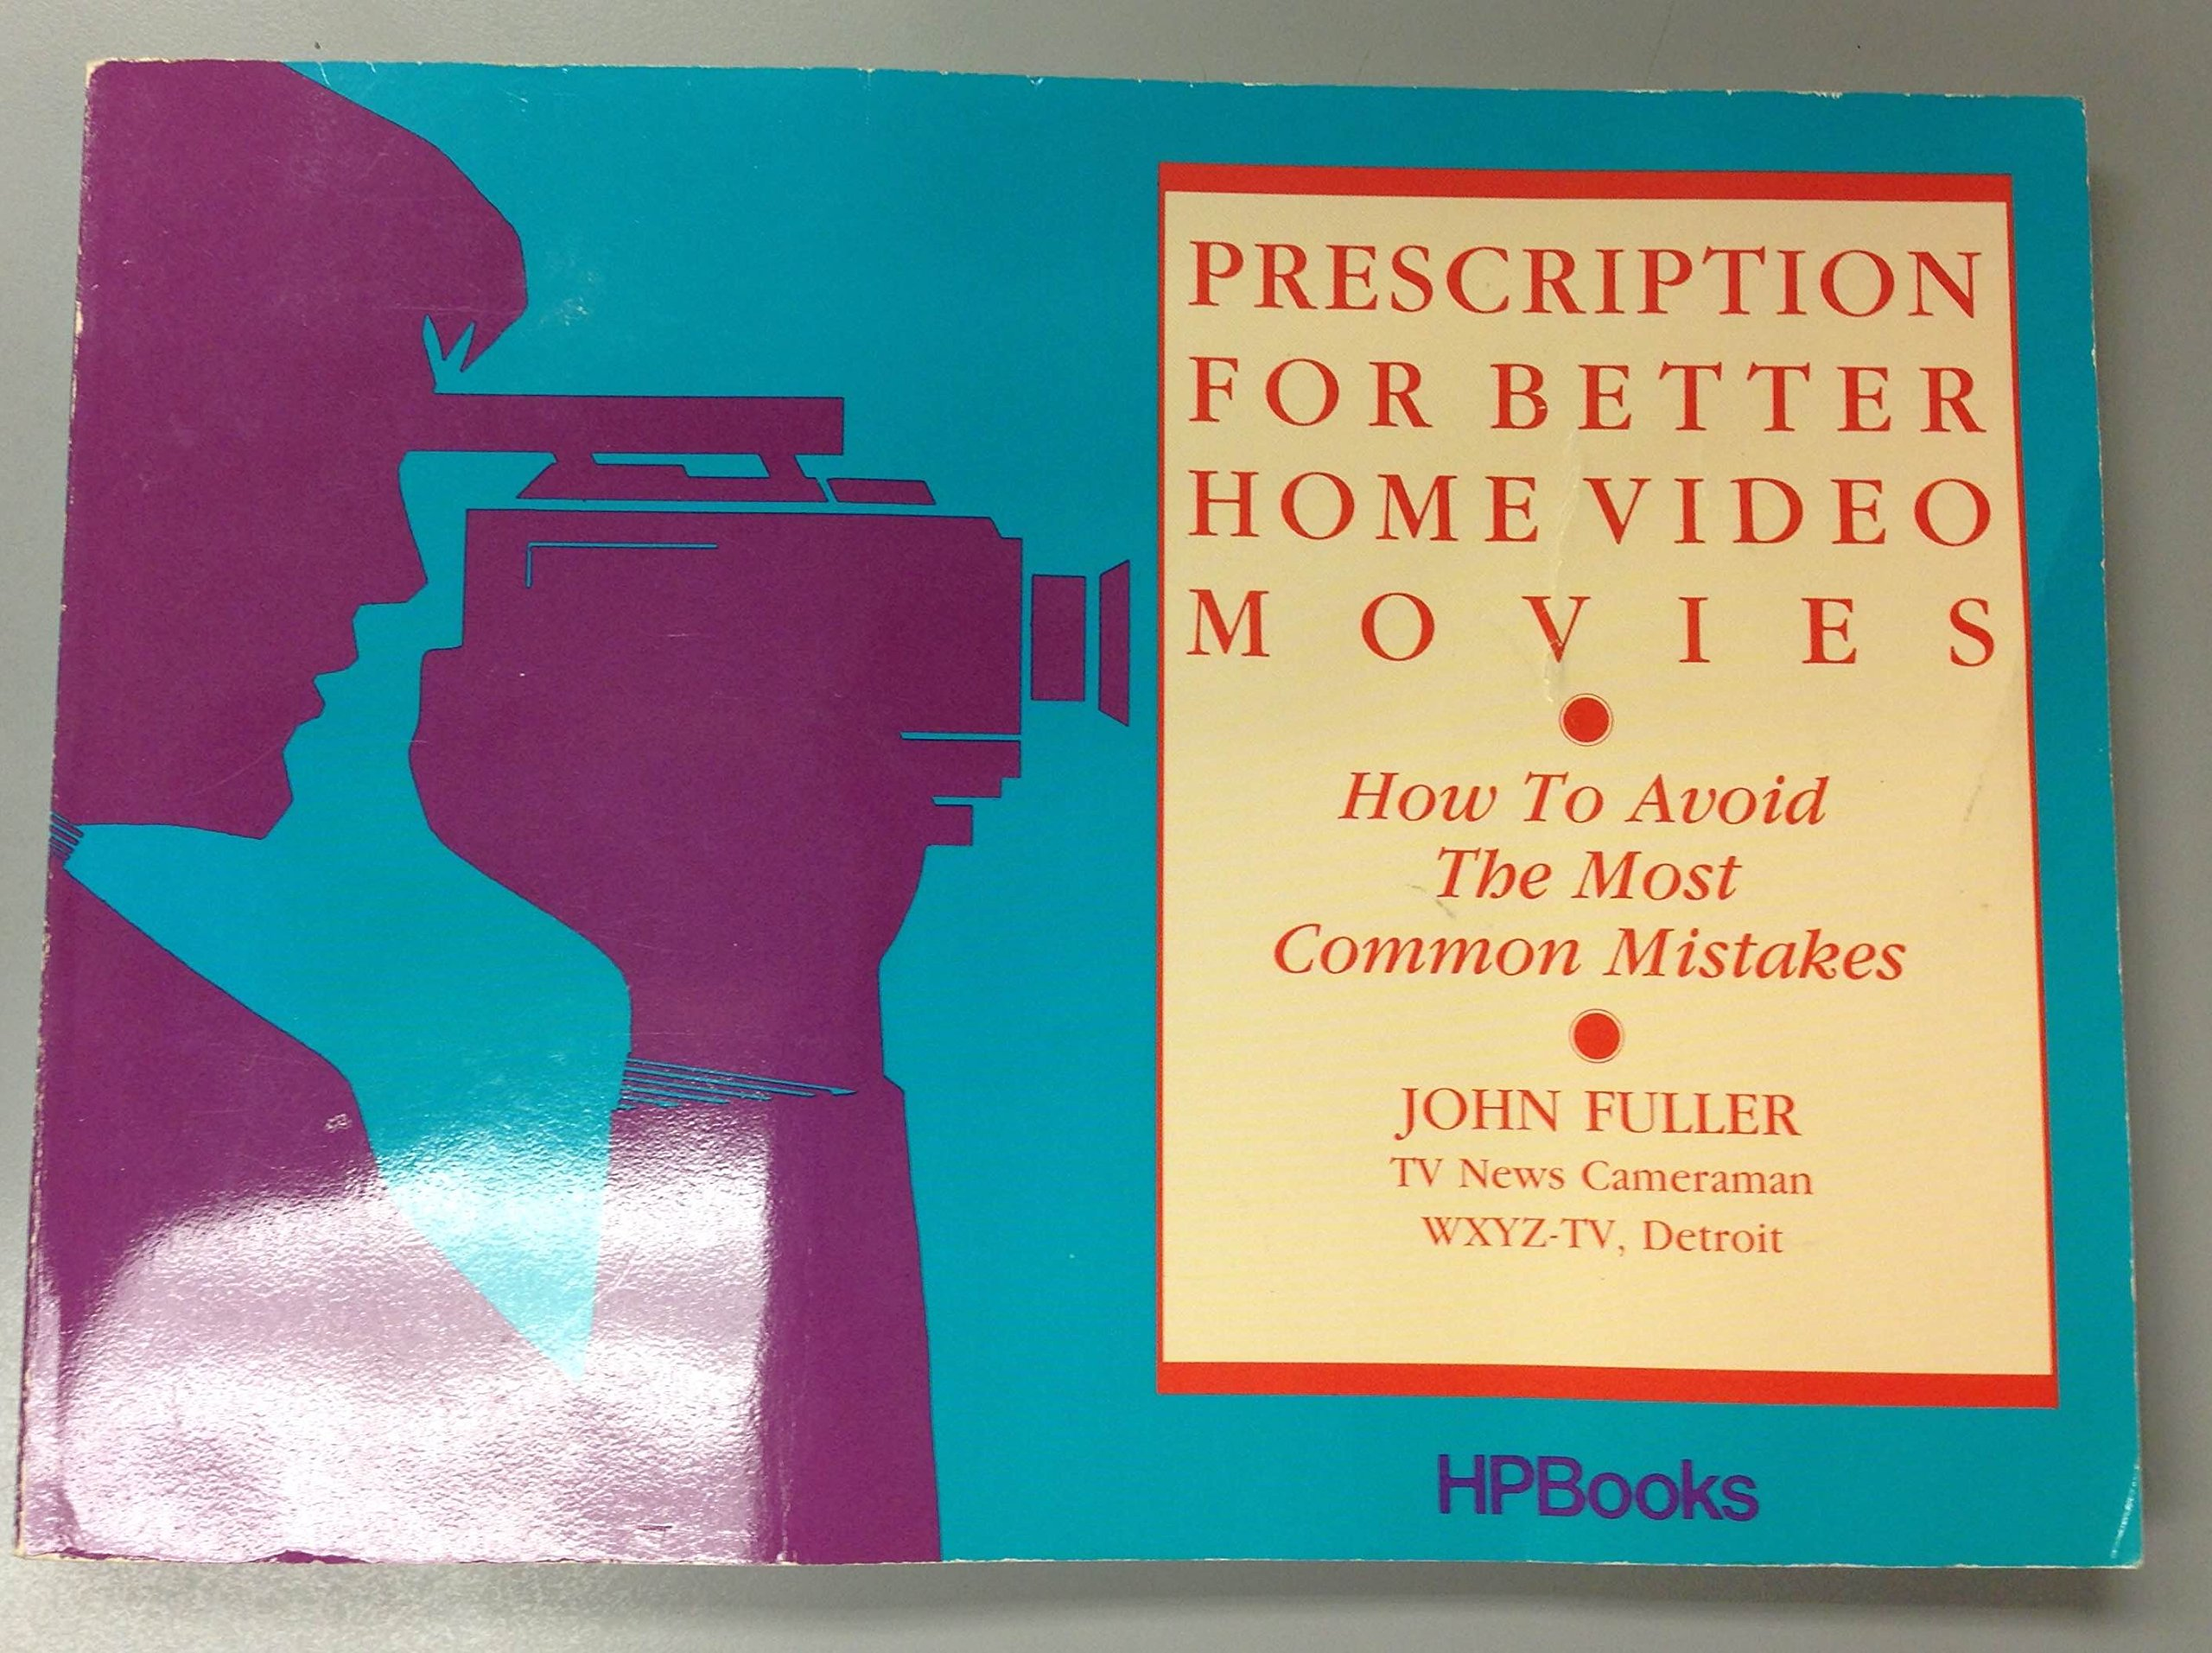 Prescription for Better Home Video Movies